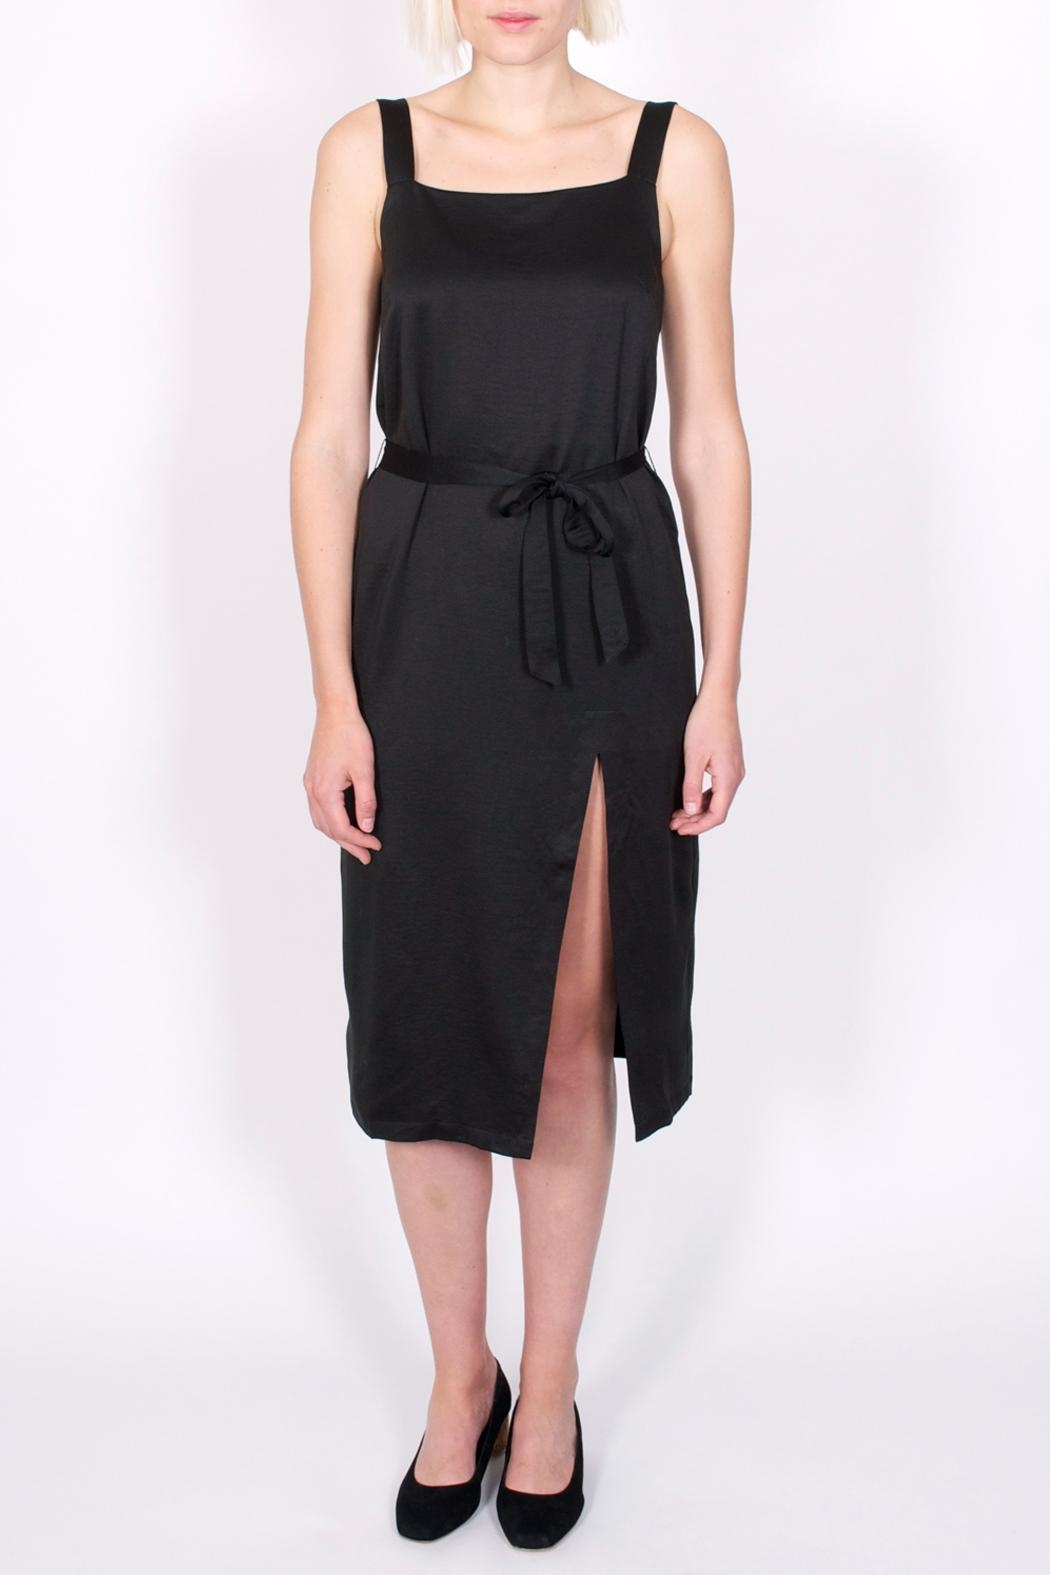 MINKPINK Bridget Midi Dress - Main Image